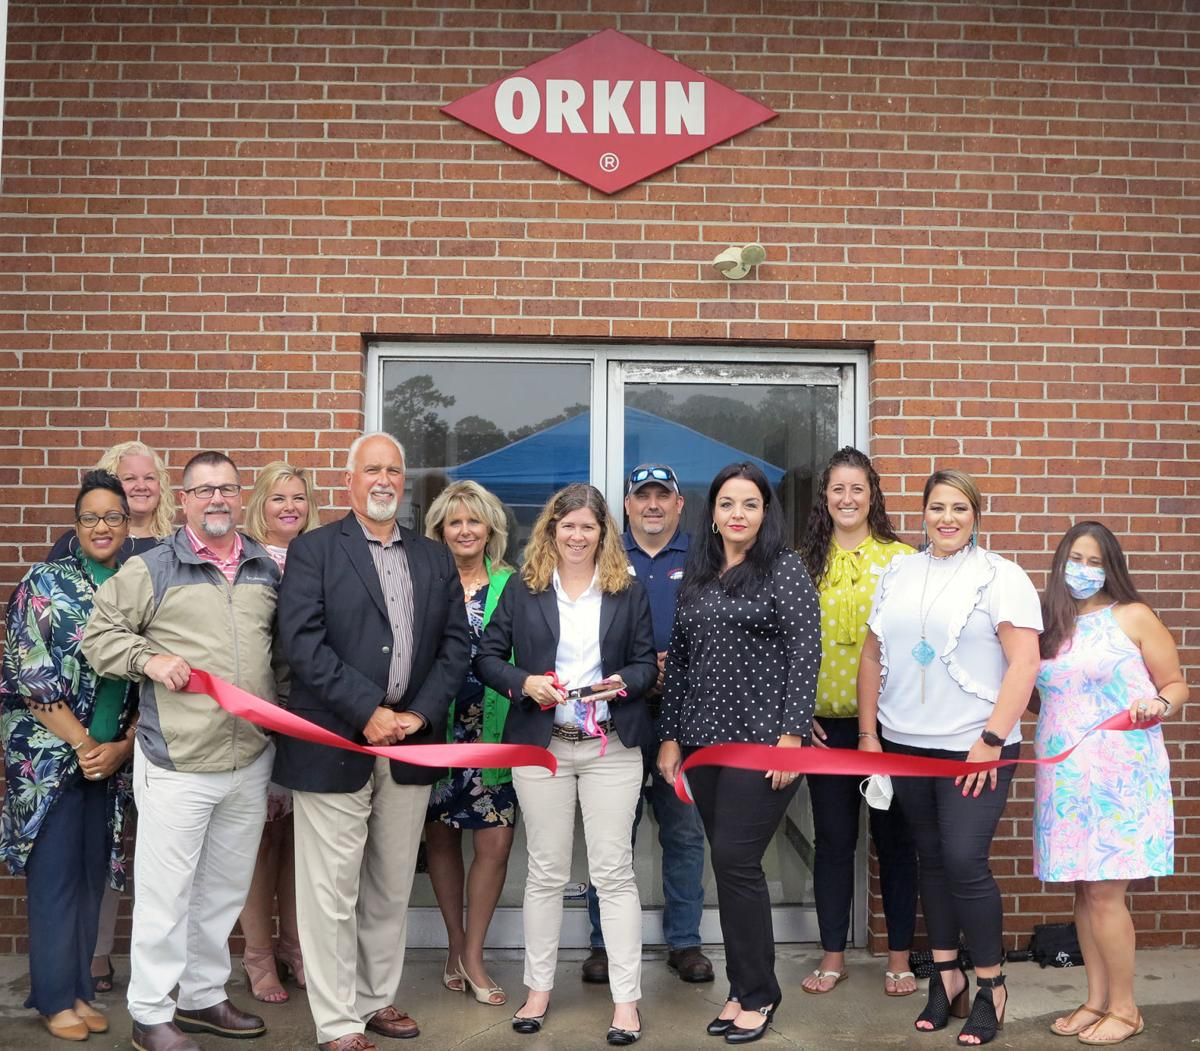 Orkin joins Florence chamber and celebrates with ribbon cutting